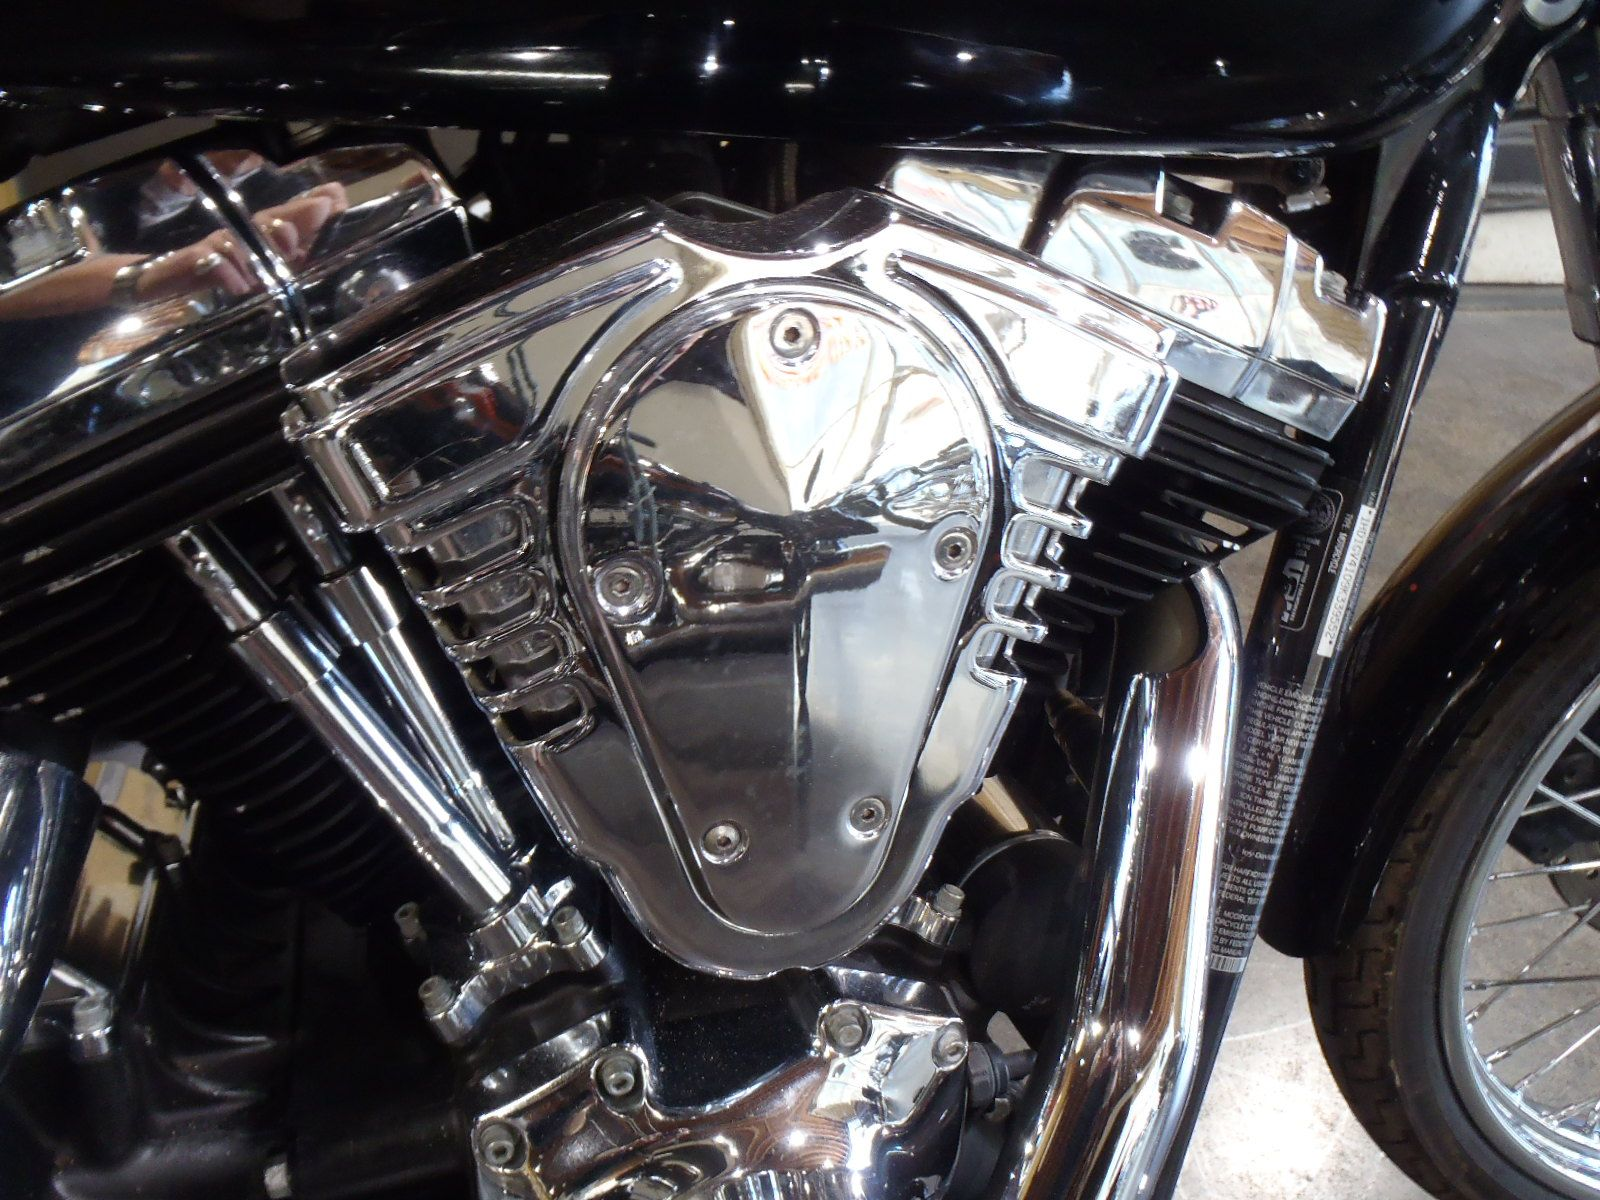 2009 Harley-Davidson Dyna Super Glide Custom in South Saint Paul, Minnesota - Photo 9